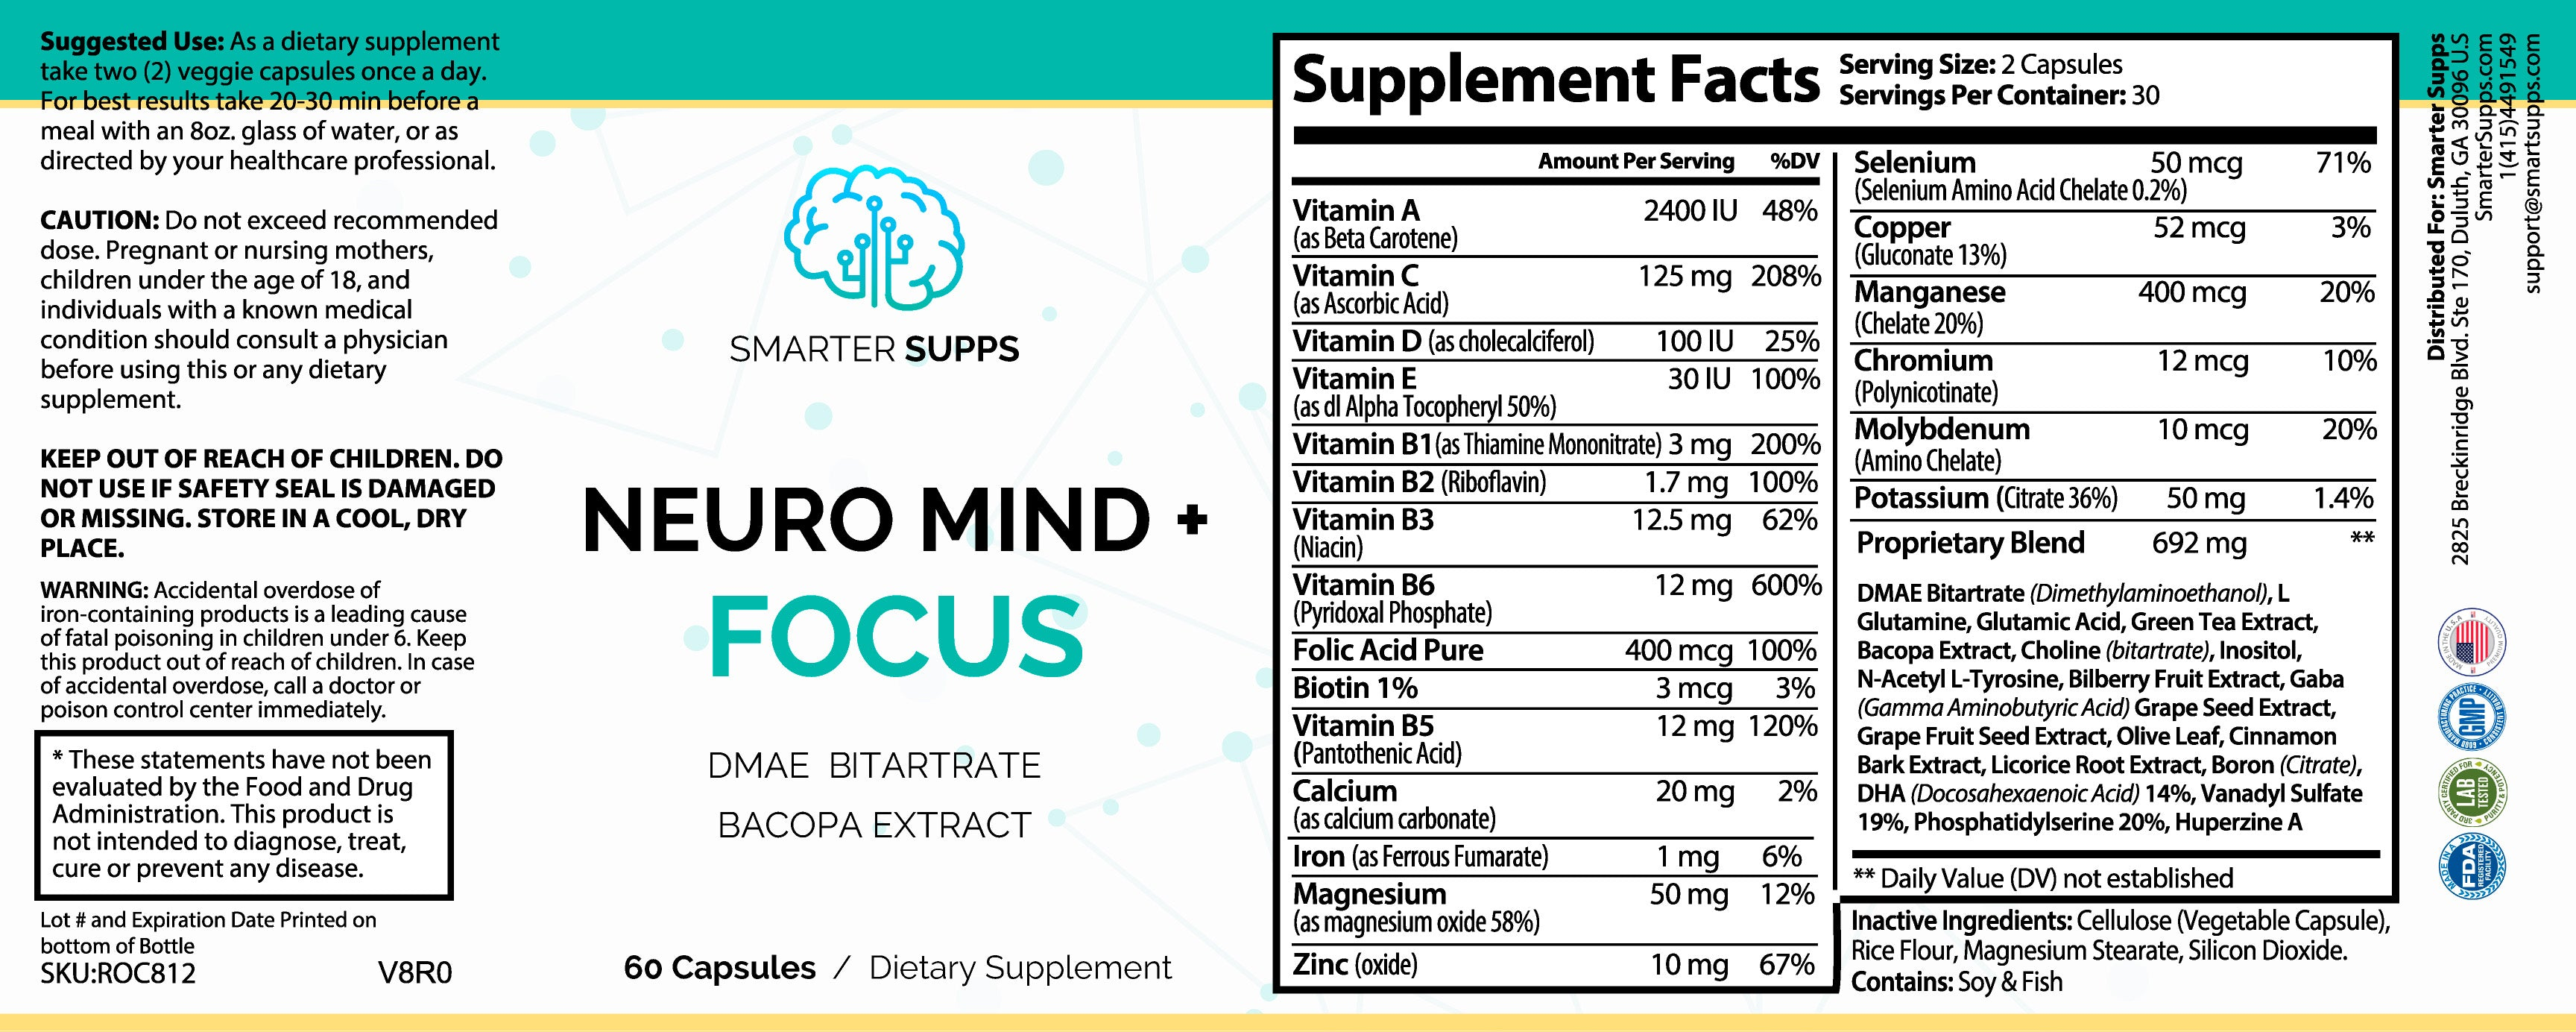 1 Bottle of Neuro Mind + Focus - DMAE Bitartrate and Bacopa Extract - FREE SHIPPING